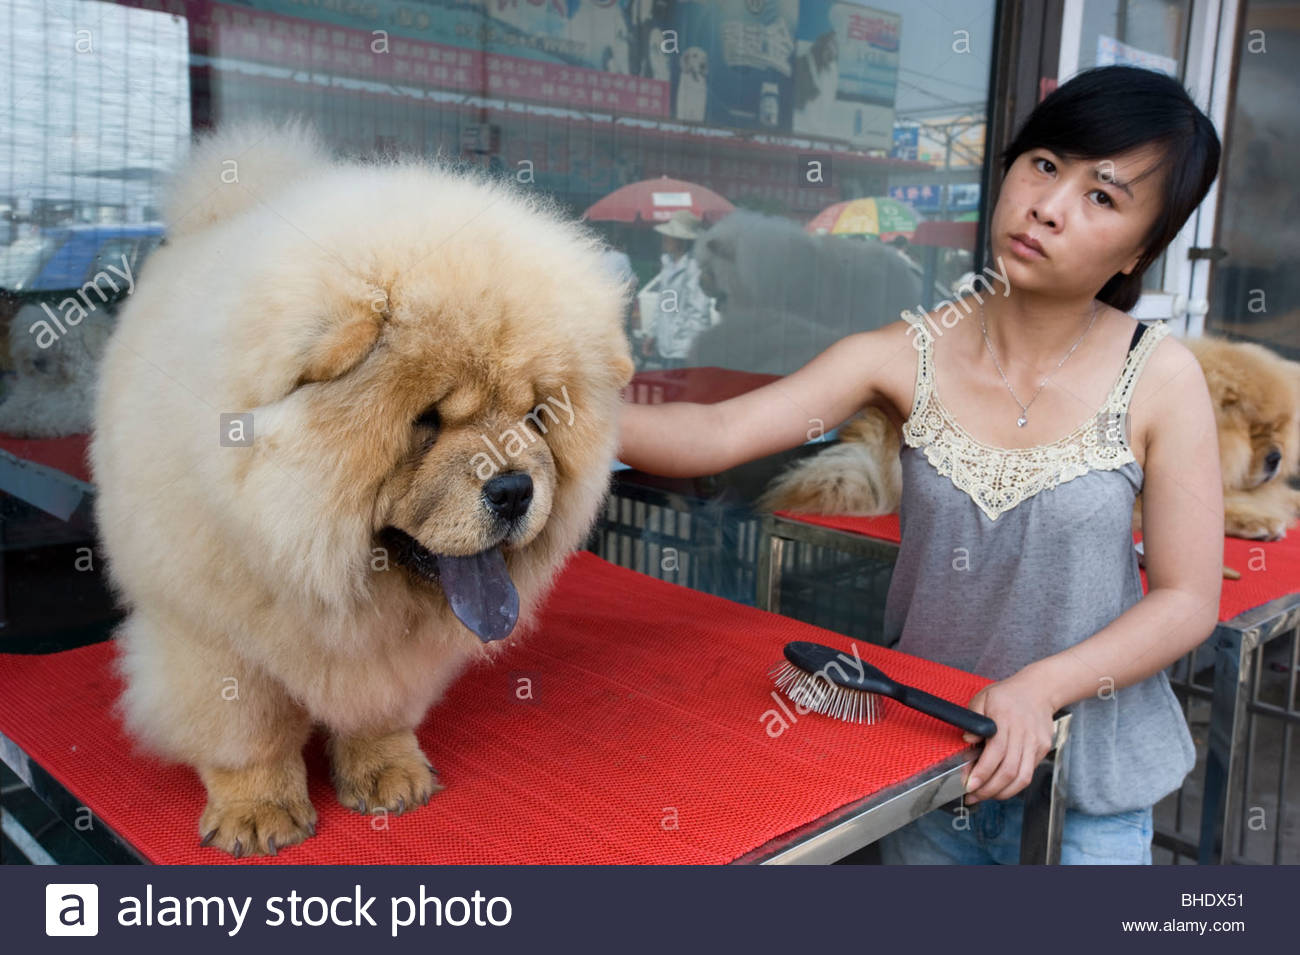 A Chowchow being groomed at the 'Dong Feng Xin' dog market. Beijing, china - Stock Image